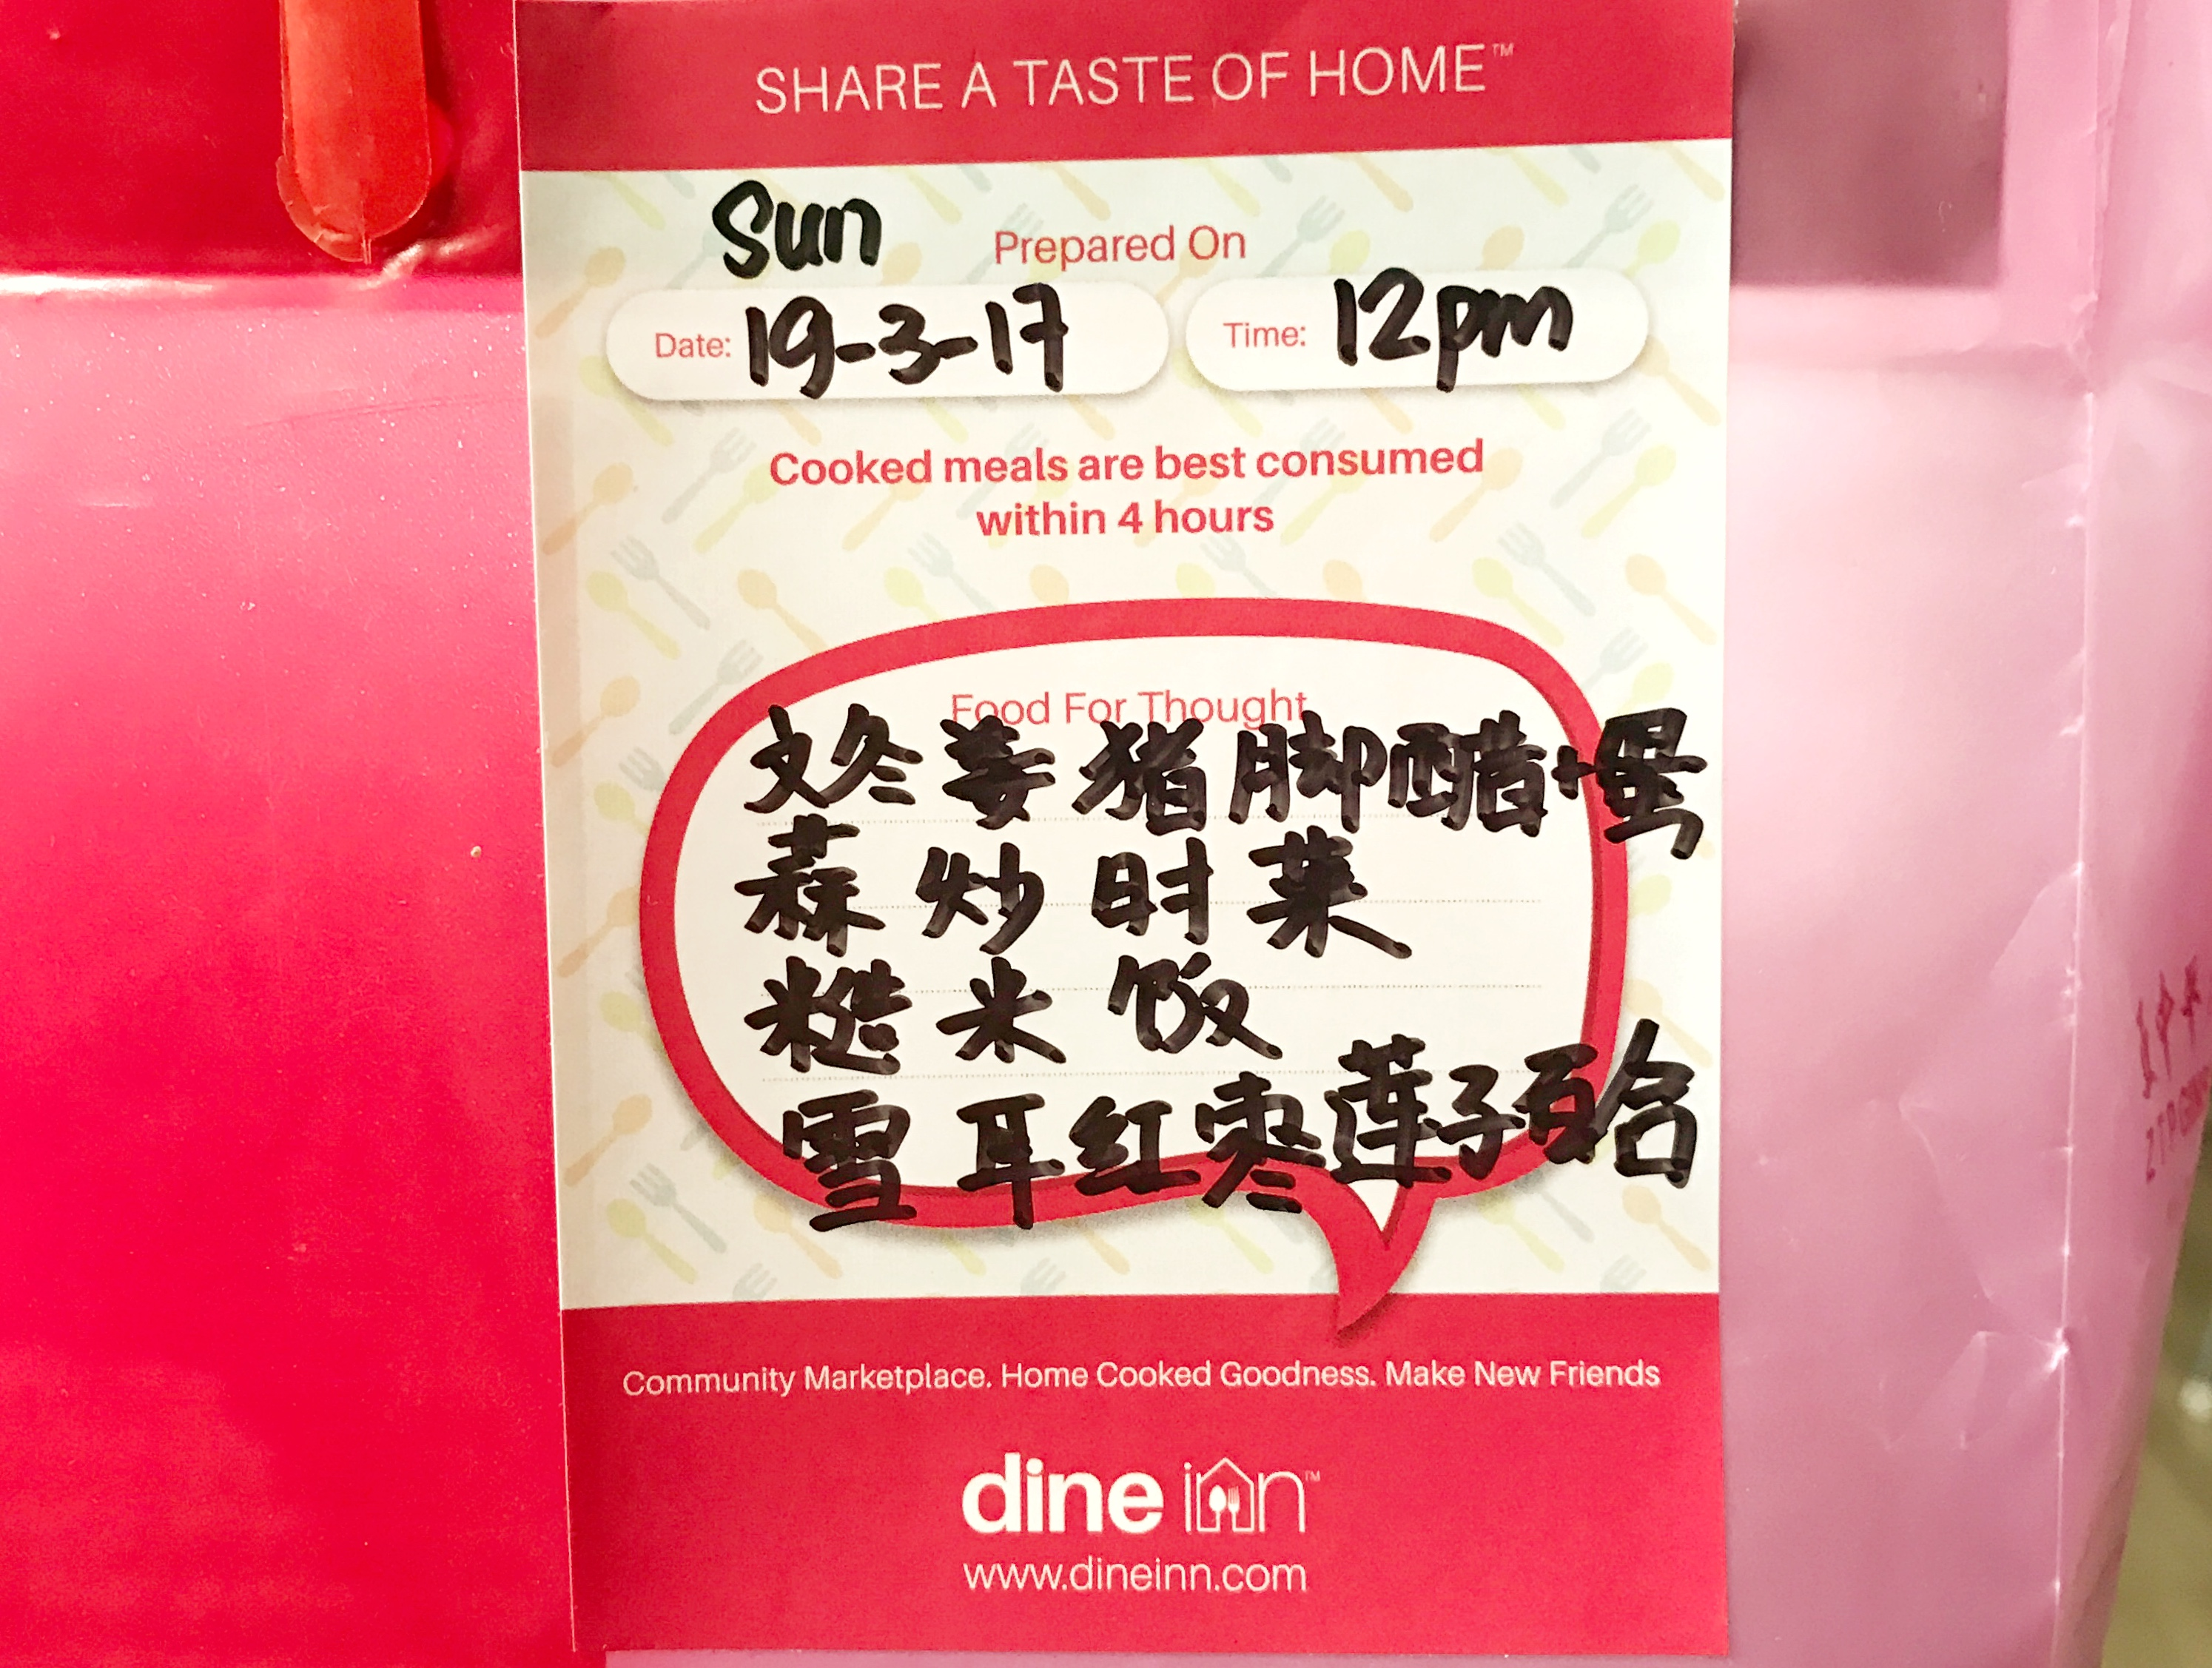 DINE INN – Online Community Marketplace for Home-cooked Meals.